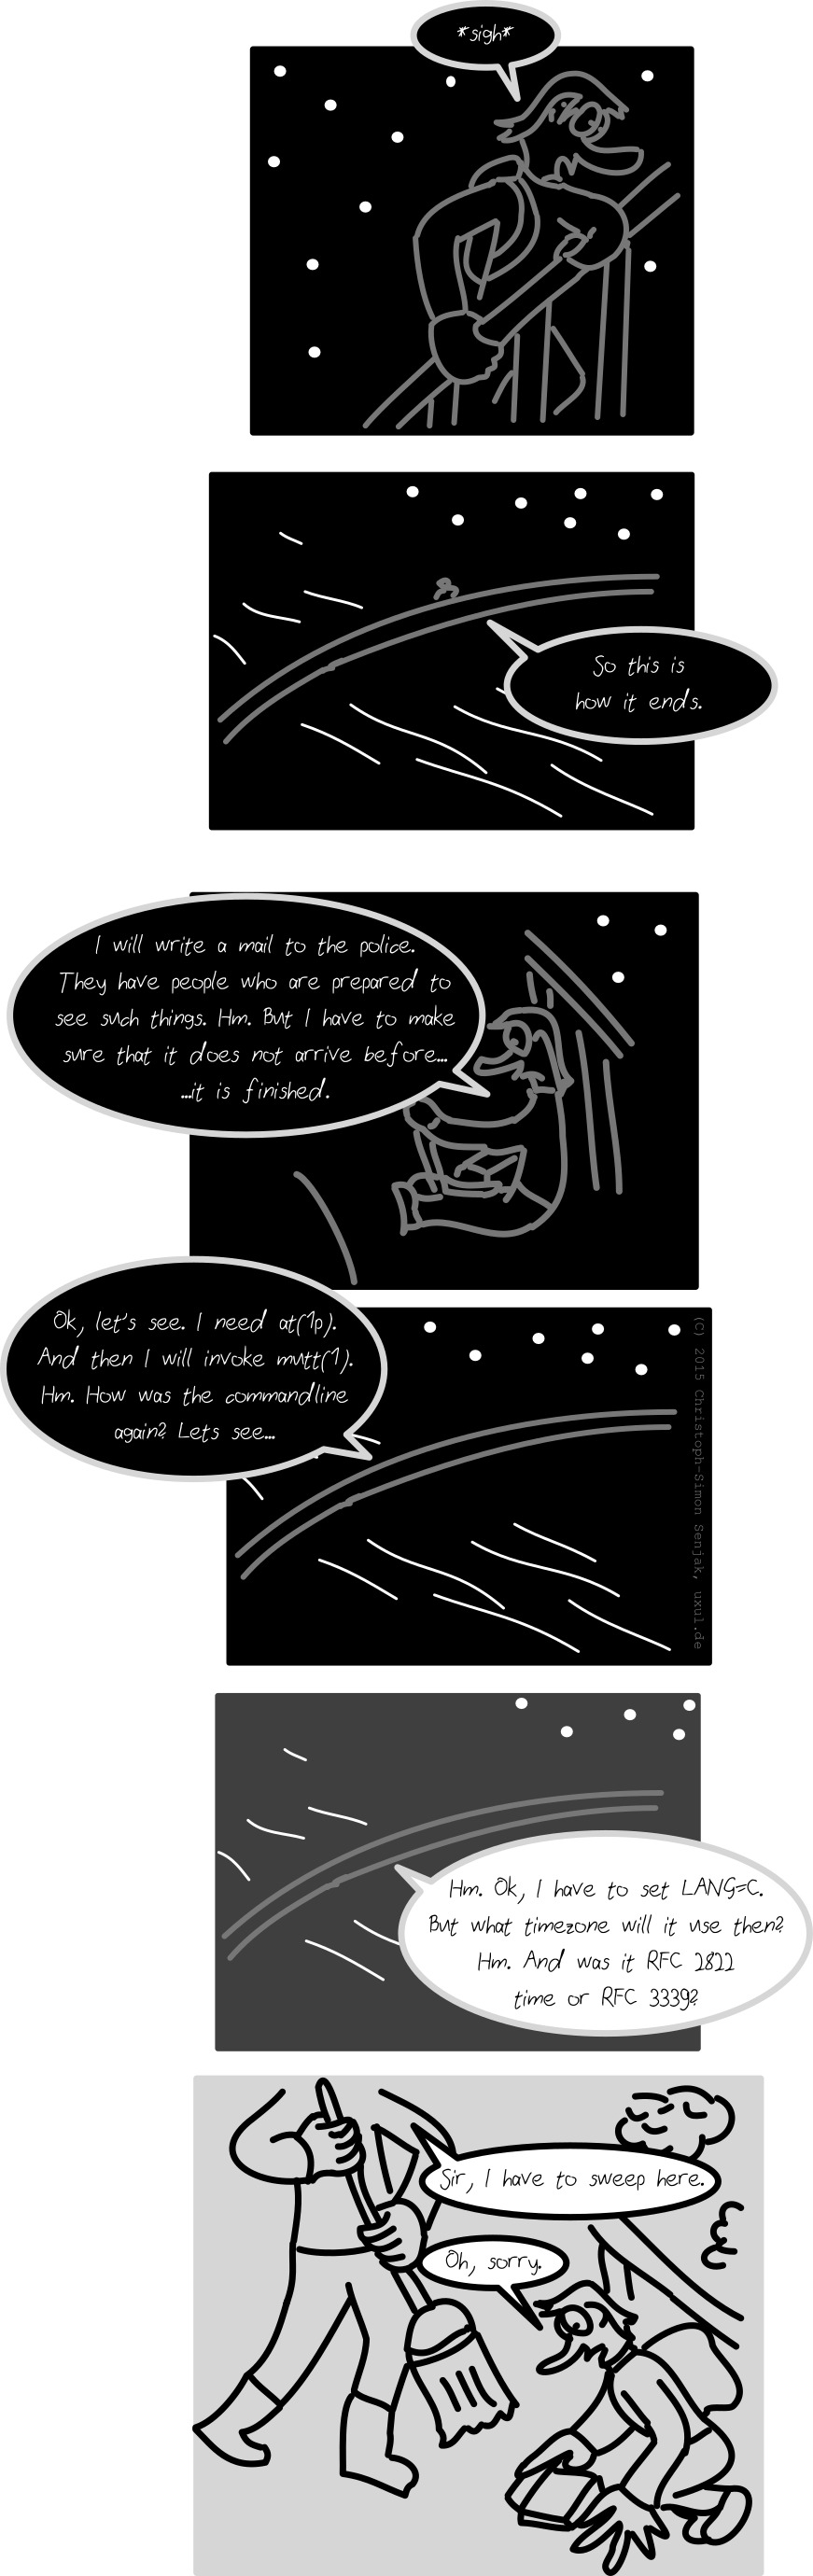 "Panel 1-2: It is night, some stars are visible. A person is standing at a bridge handrail, saying: ""*sigh*, so this is how it ends."" -- Panel 3: The person sits down on the sidewalk and opens up a laptop, saying: ""I will write a mail to the police. They have people who are prepared to see such things. Hm. But I have to make sure that it does not arrive before… it is finished."" -- Panel 4: ""Ok, let's see. I need at(1p). And then I will invoke mutt(1). Hm. What was the commandline again? Let's see…"" -- Panel 5: It is dawn. The person says: ""Hm. Ok, I have to set LANG=C. But what timezone will it use then? Hm. And was it RFC 2822 time or RFC 3339?"" -- Panel 6: It is day. A city cleaner with a broom appears and sais: ""Sir, I have to sweep here."" The person says: ""Ok, sorry."", grabs his laptop and stands up."